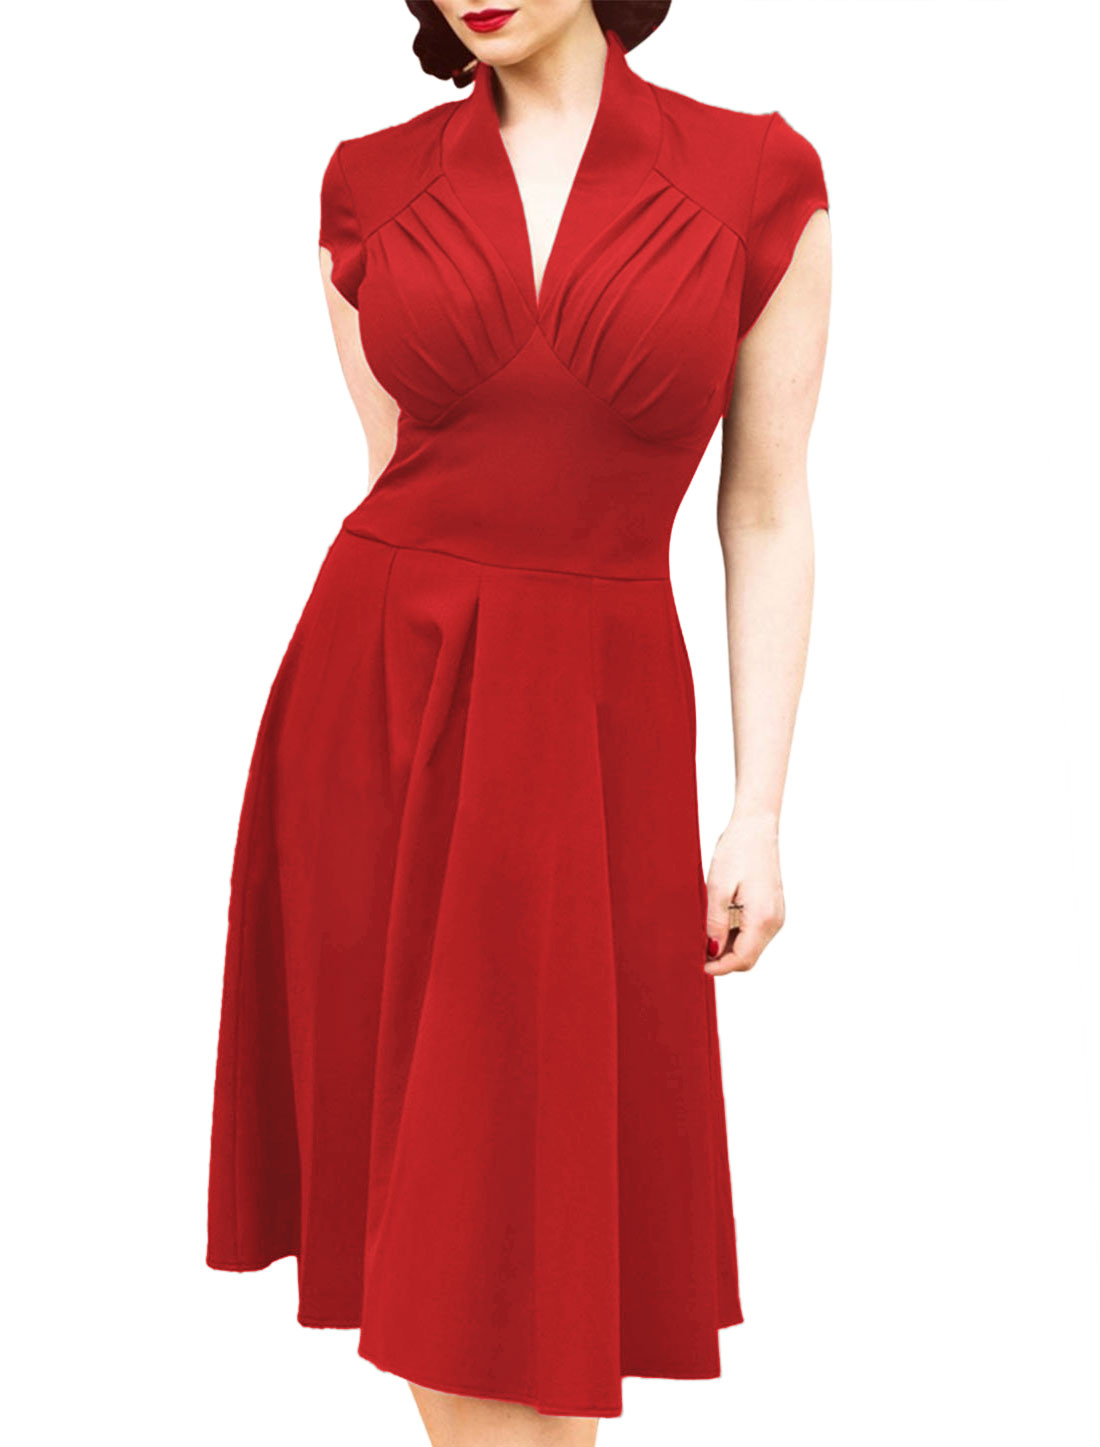 Women V Neck Ruched Cap Sleeves Fit and Flare Dress Red L